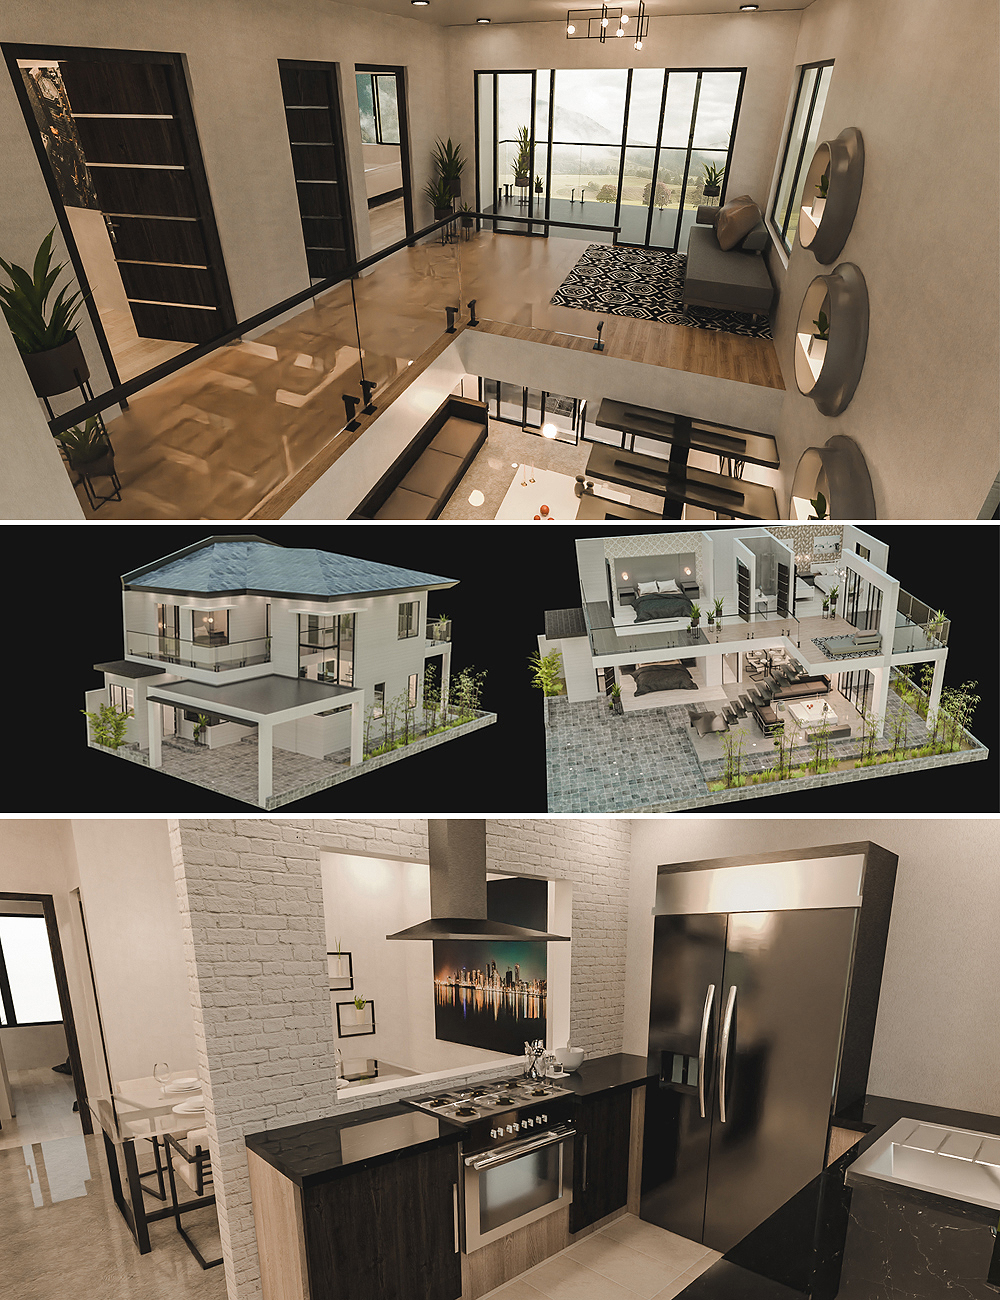 Modern Vacation House by: Tesla3dCorp, 3D Models by Daz 3D